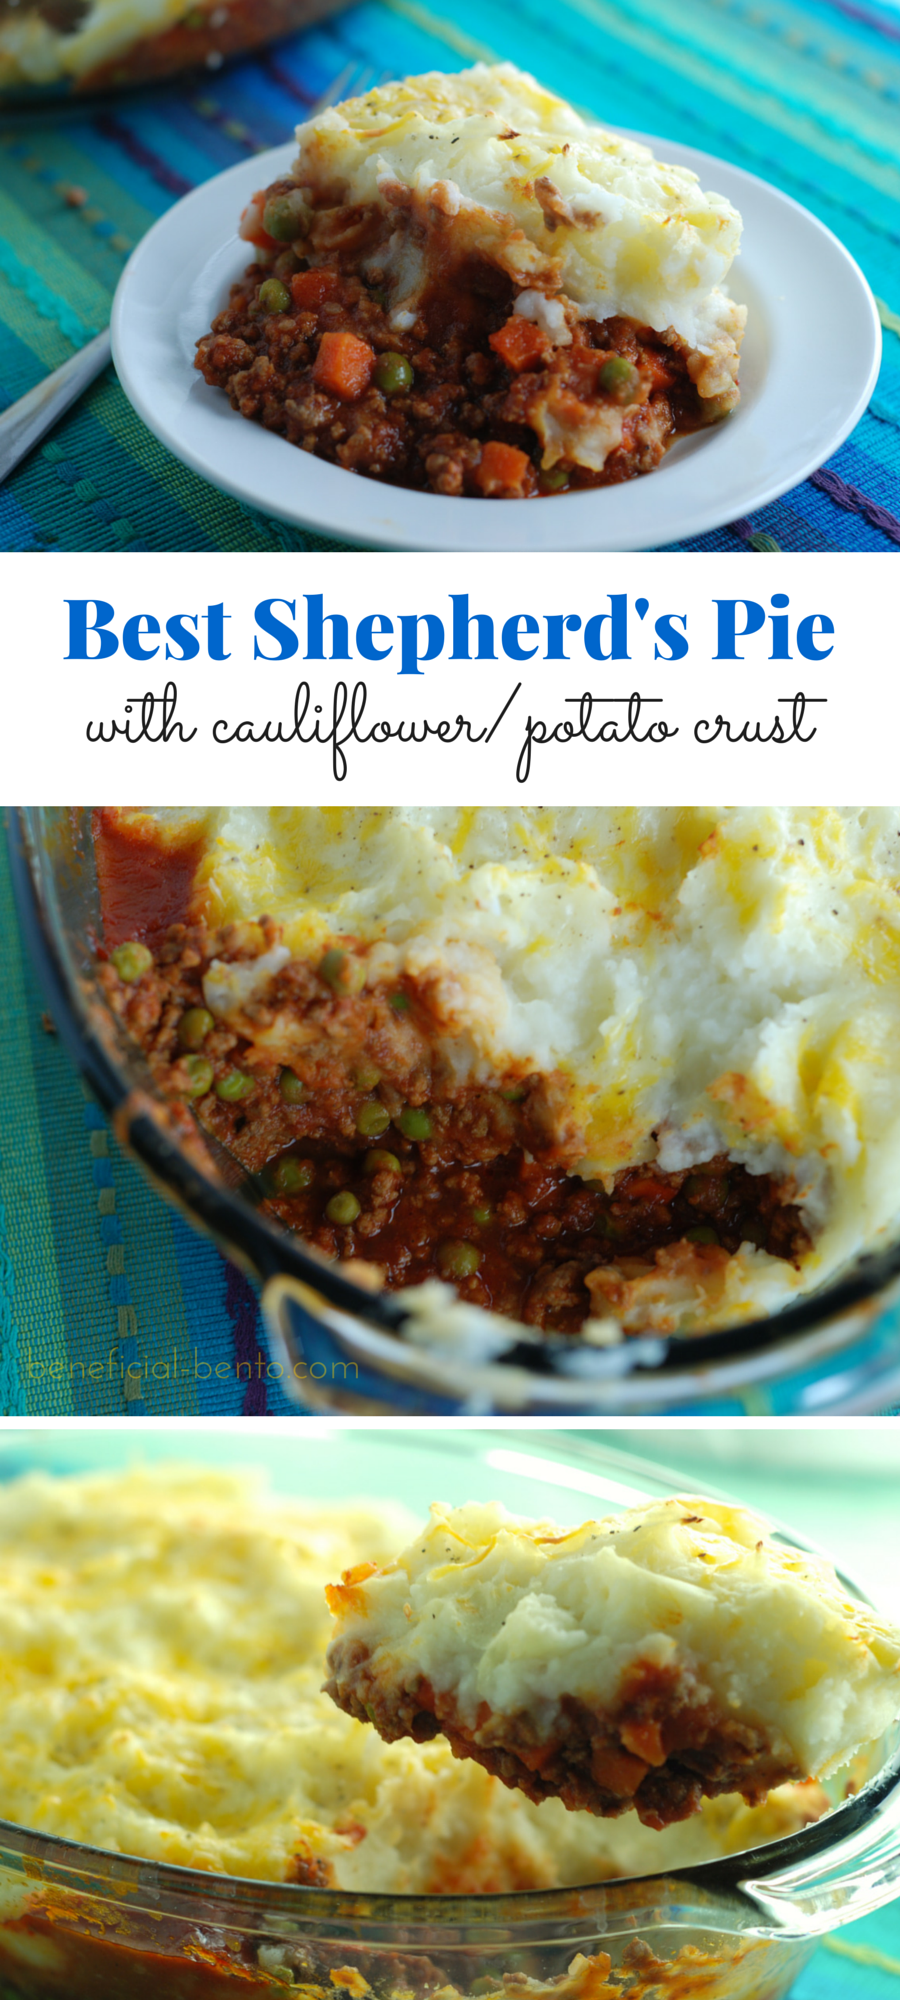 Shepherd's Pie lightened up with cottage cheese and cauliflower - my family could not believe this had cauliflower in it!